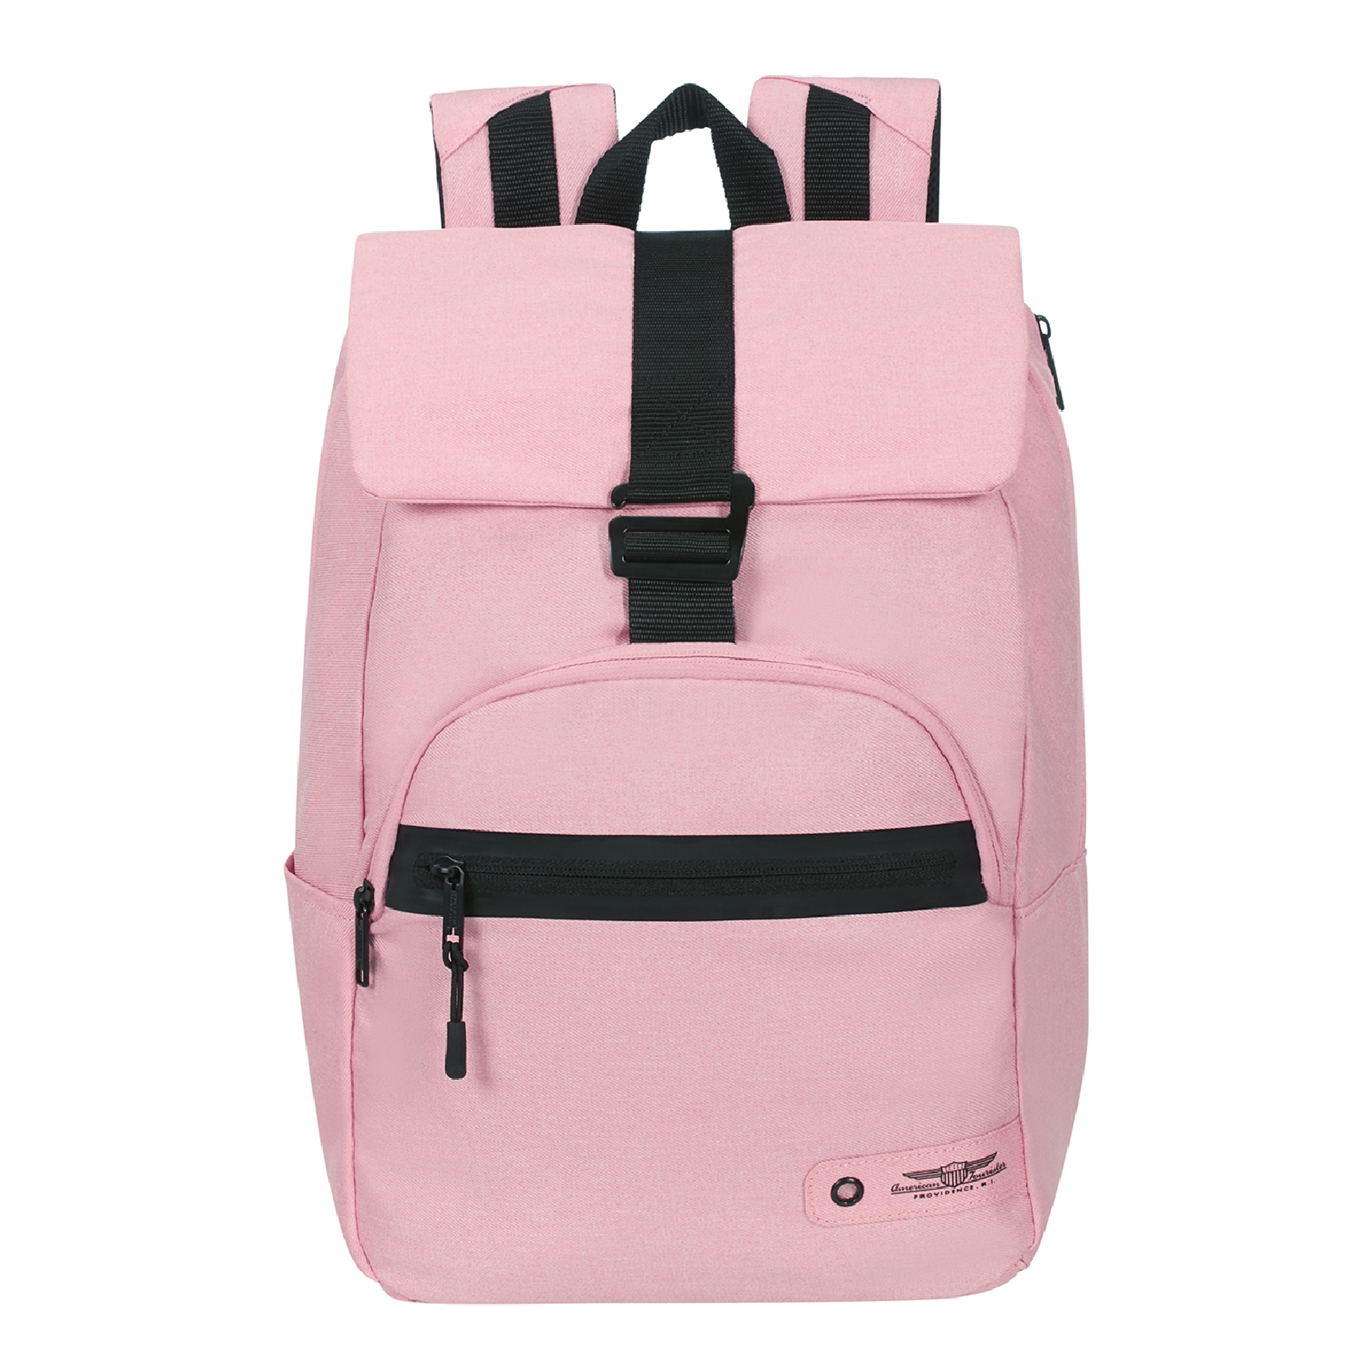 American Tourister City Aim Laptop Backpack 14.1